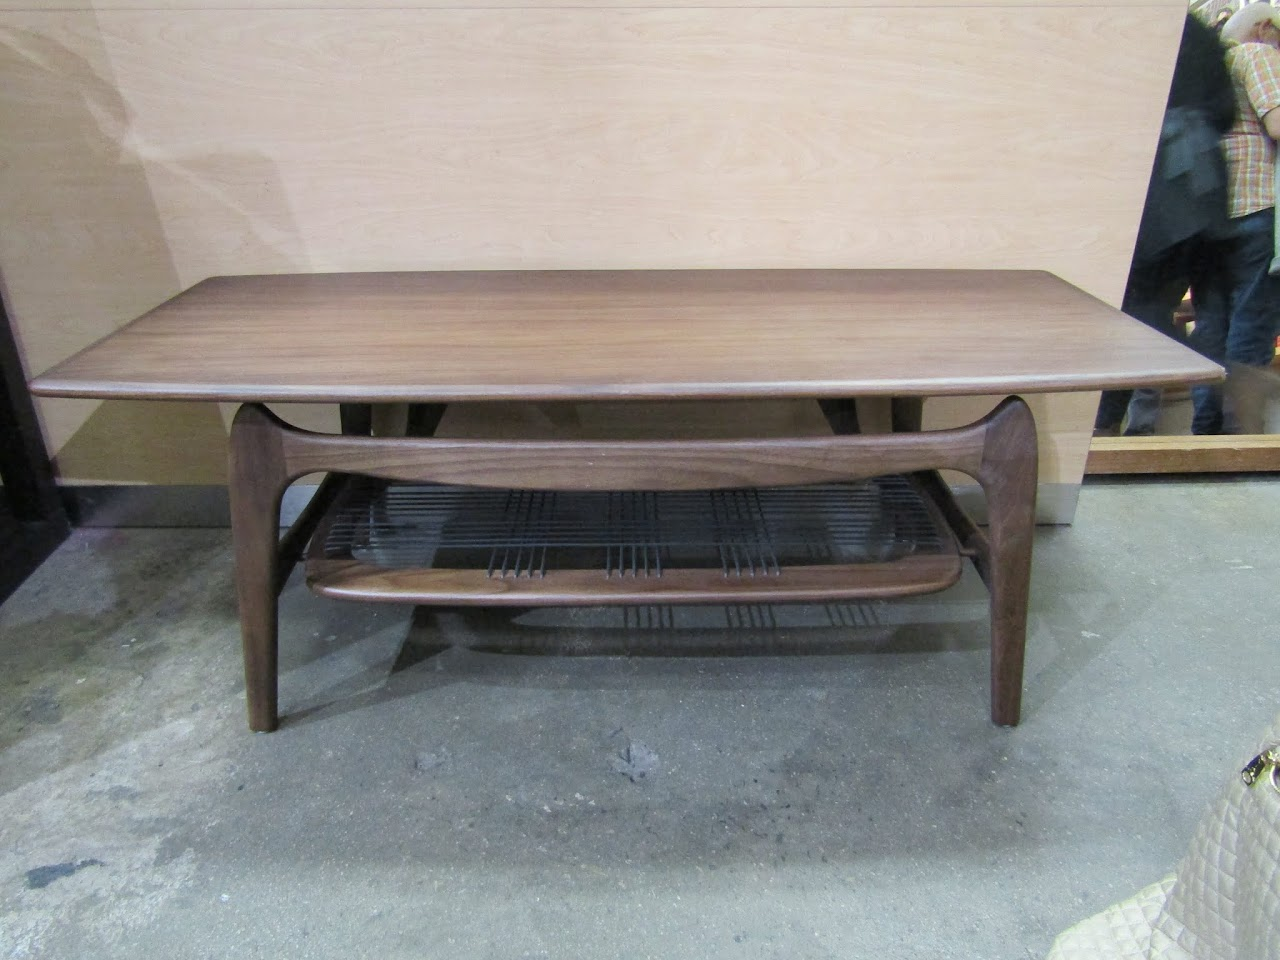 Scandanavian-Style CoFfee Table